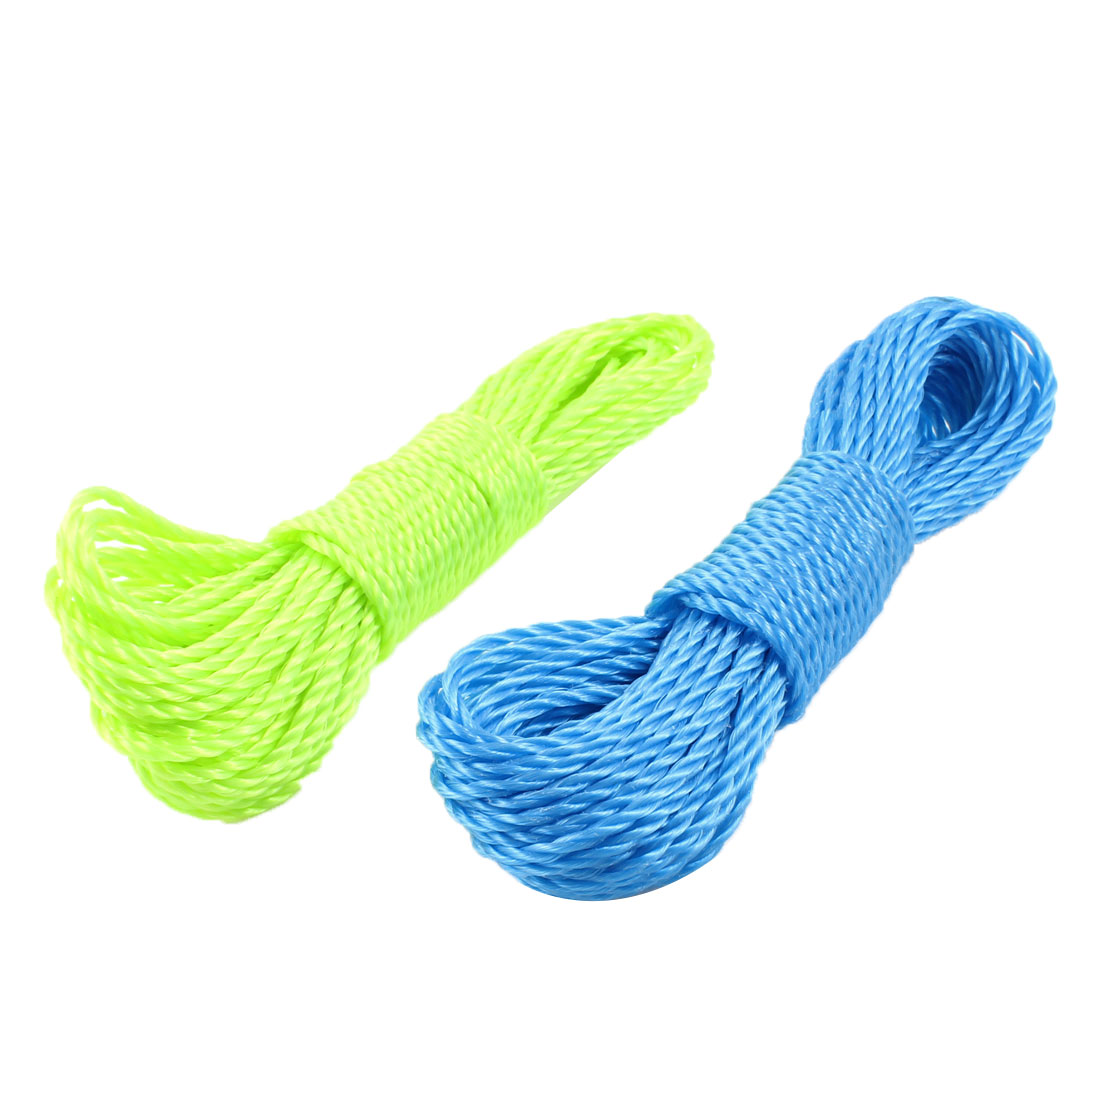 2 Pcs 49.2Ft Long Clothes Hanging Rope Nylon String Clothesline Blue Light Green